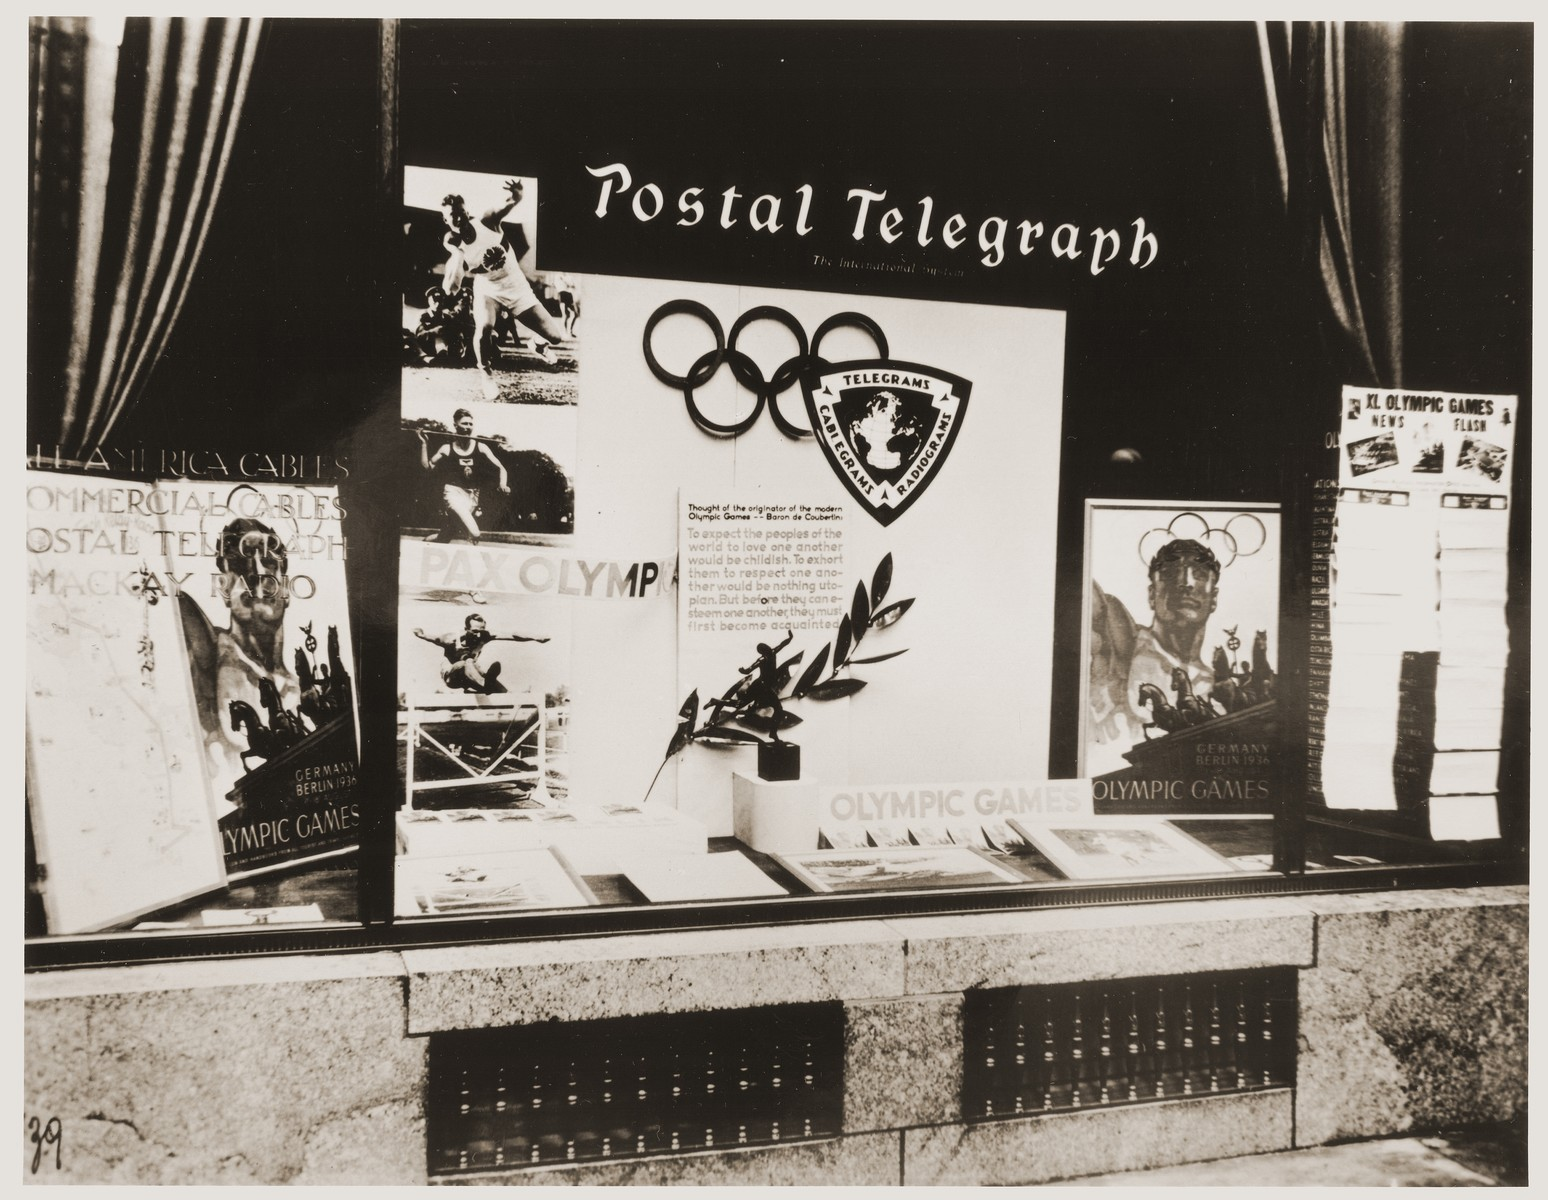 An American travel agency advertises the Summer Olympics in Berlin as well as telegrams, cablegrams, and News Flash Reports on events from the Olympic Games.